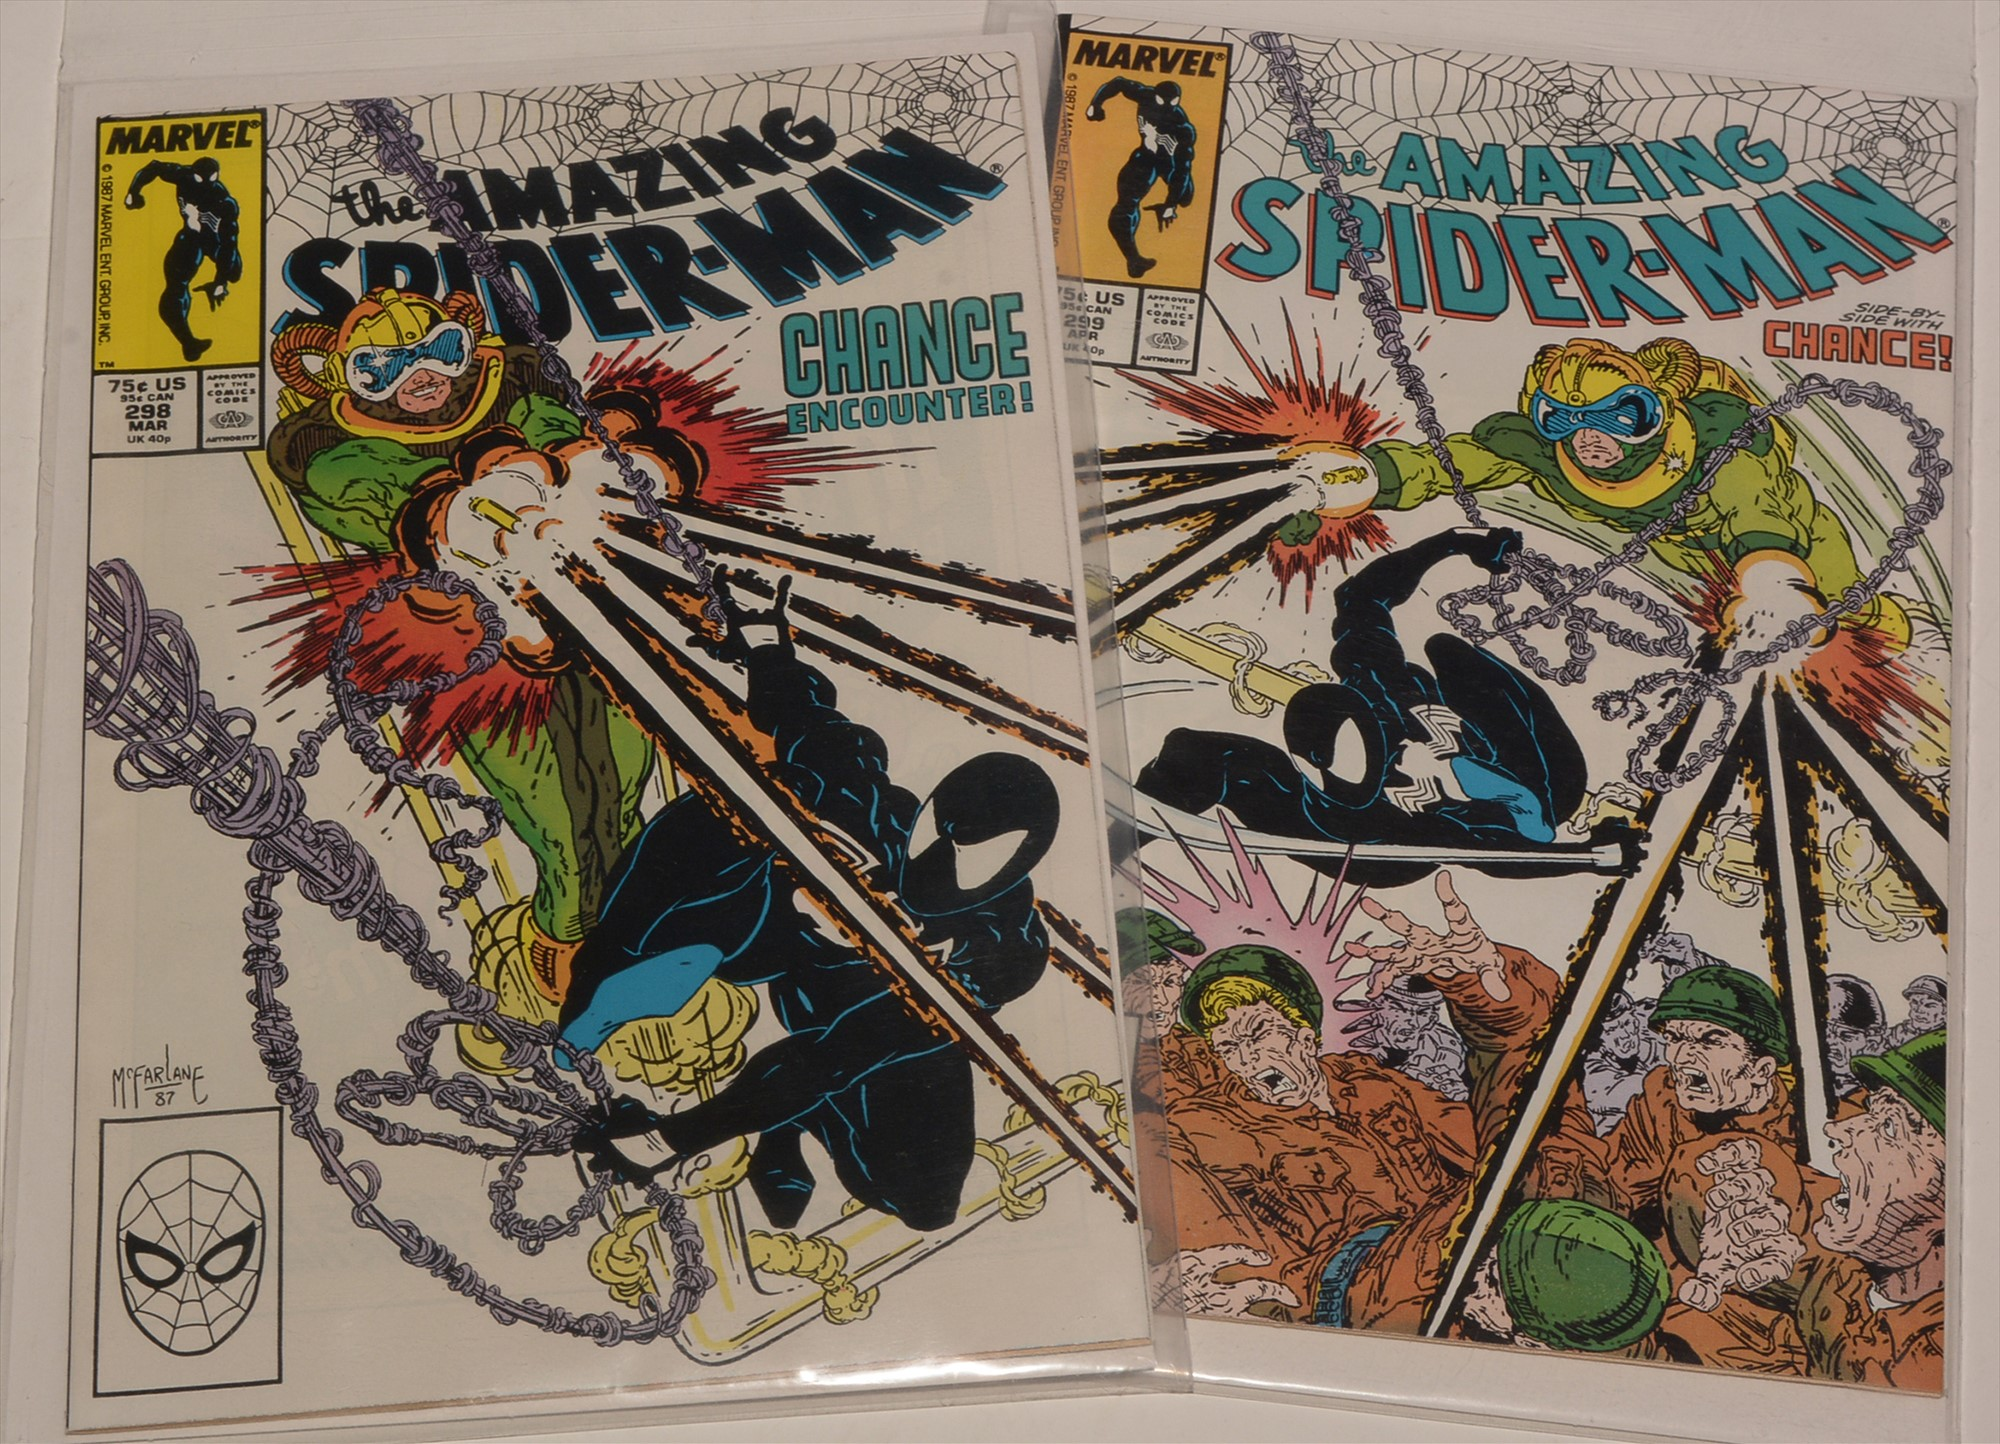 Amazing Spider-Man No's. 298 and 299.